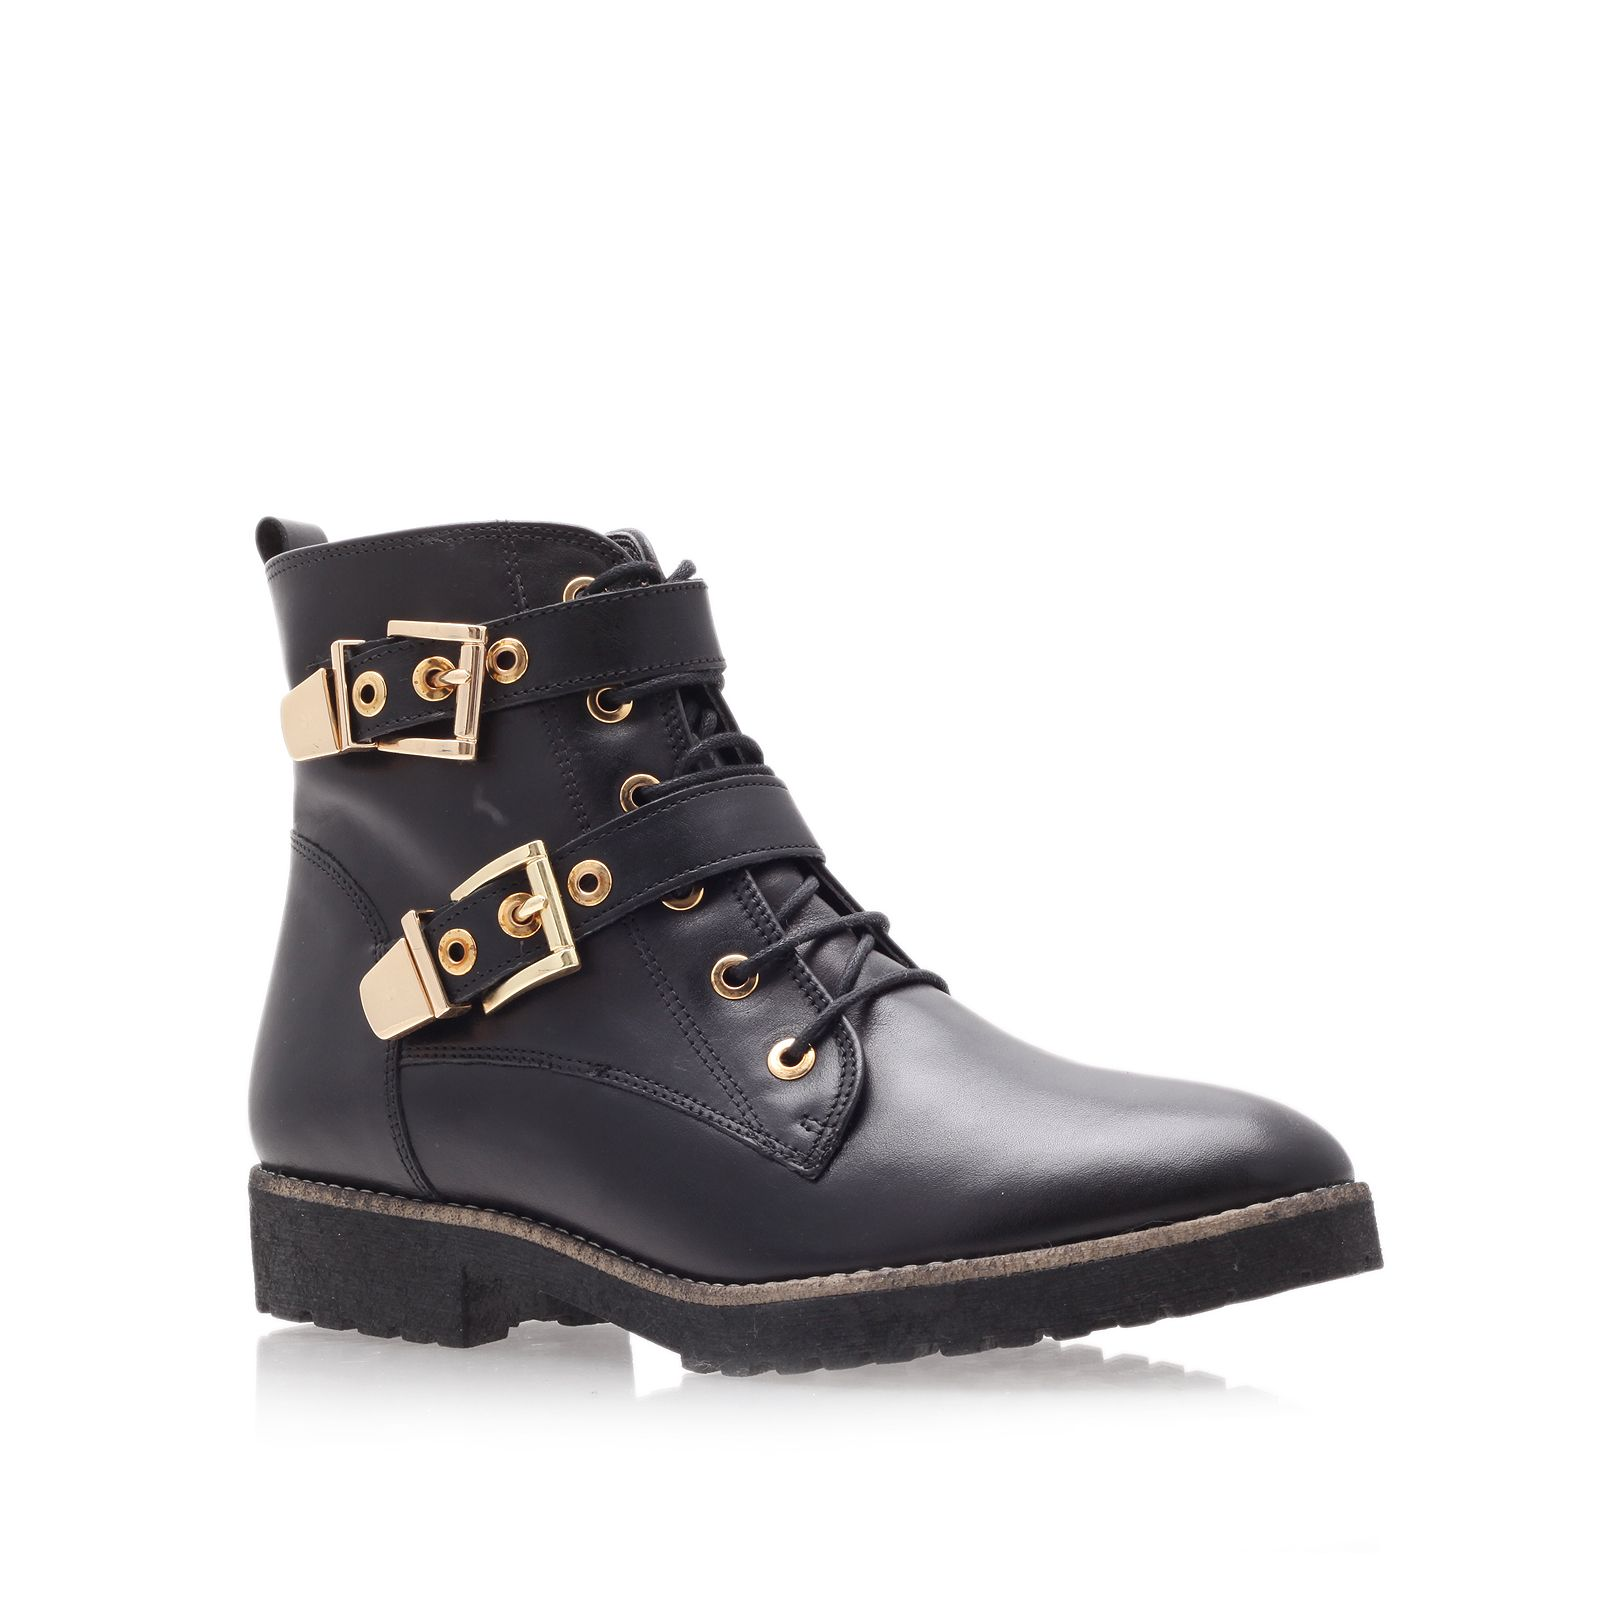 buy cheap carvela boots compare shoes prices for best uk